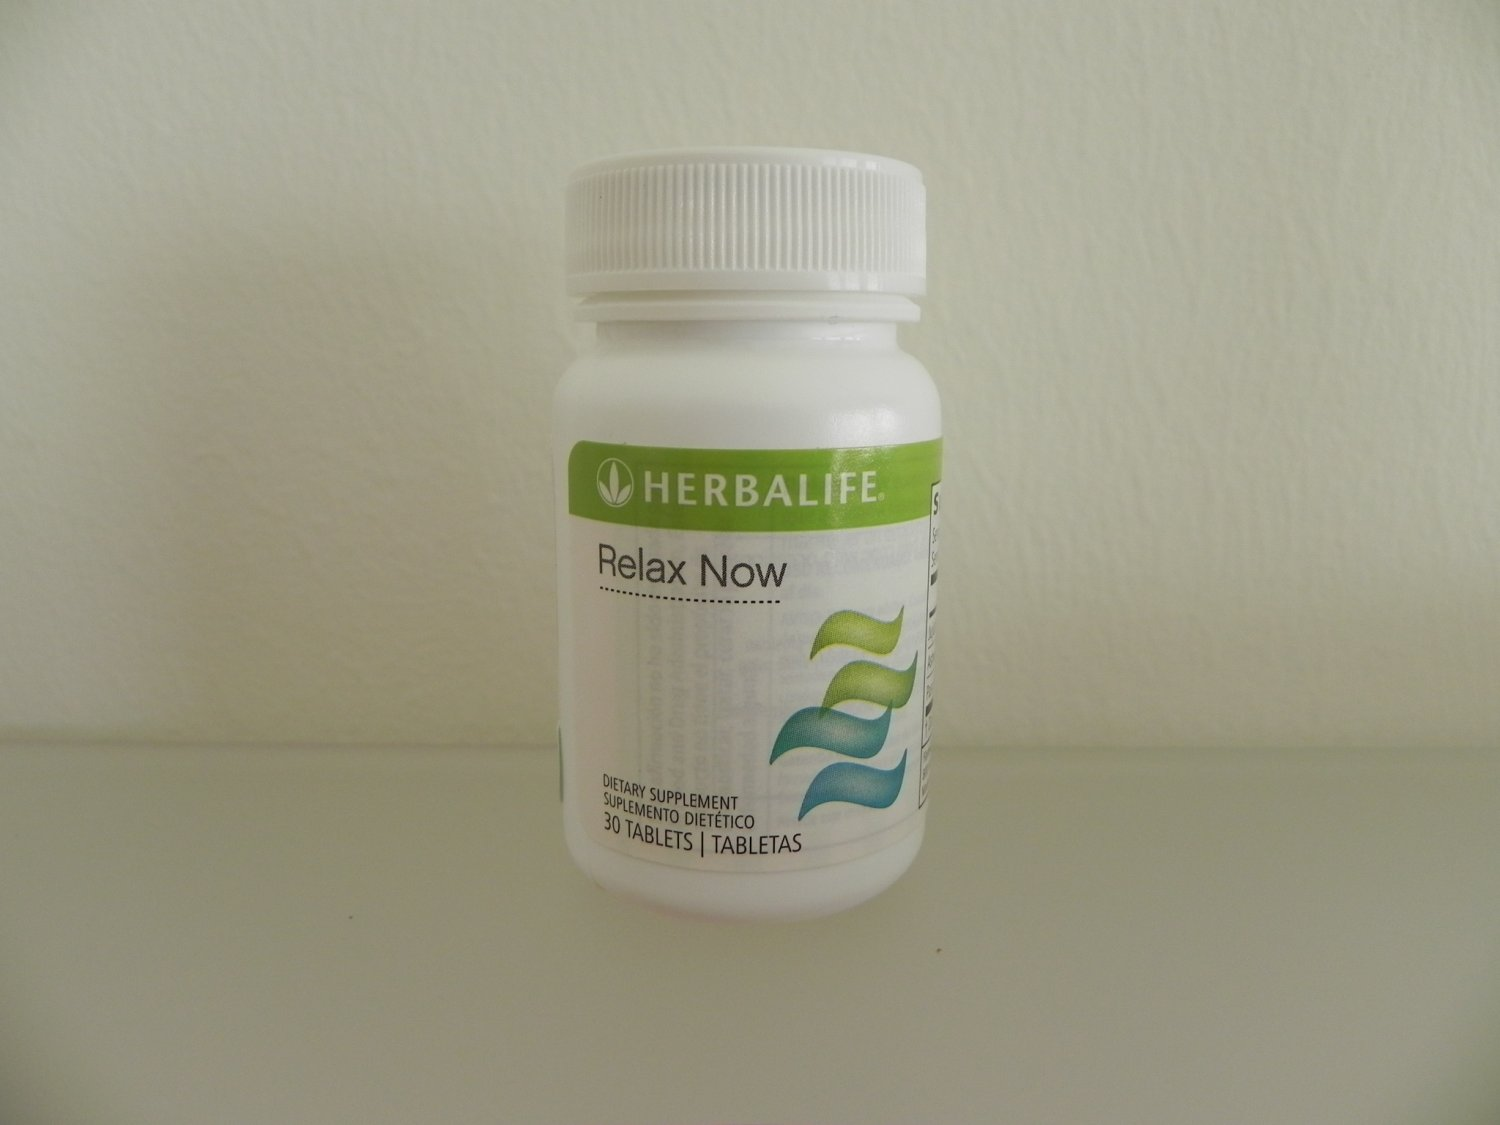 Herbalife Relax Now Fresh exp 1/2019 or better